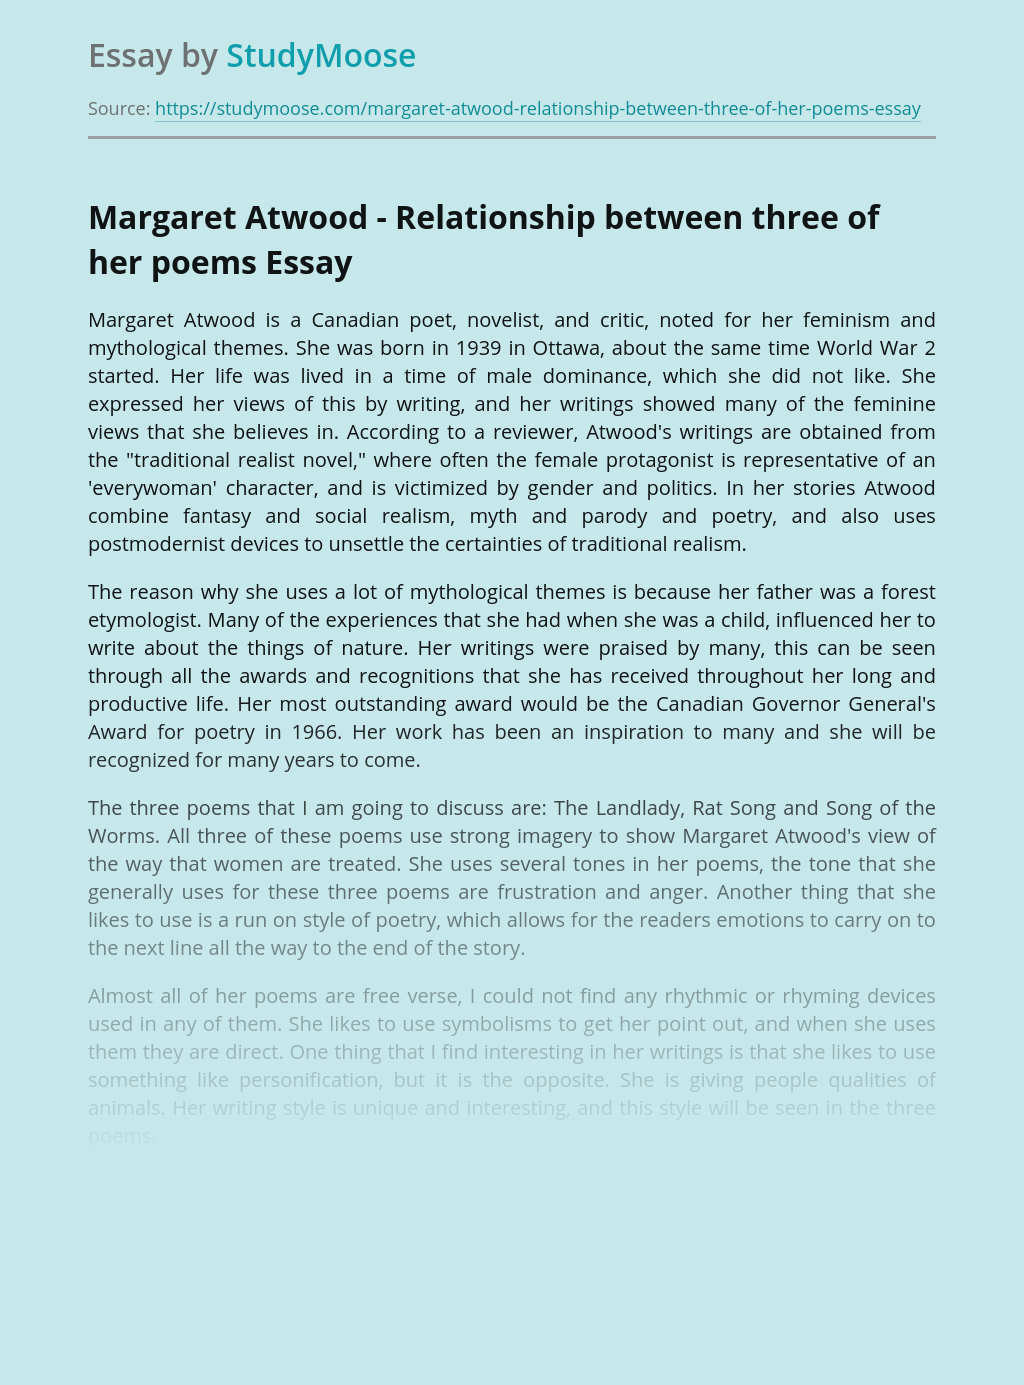 Margaret Atwood - Relationship between three of her poems